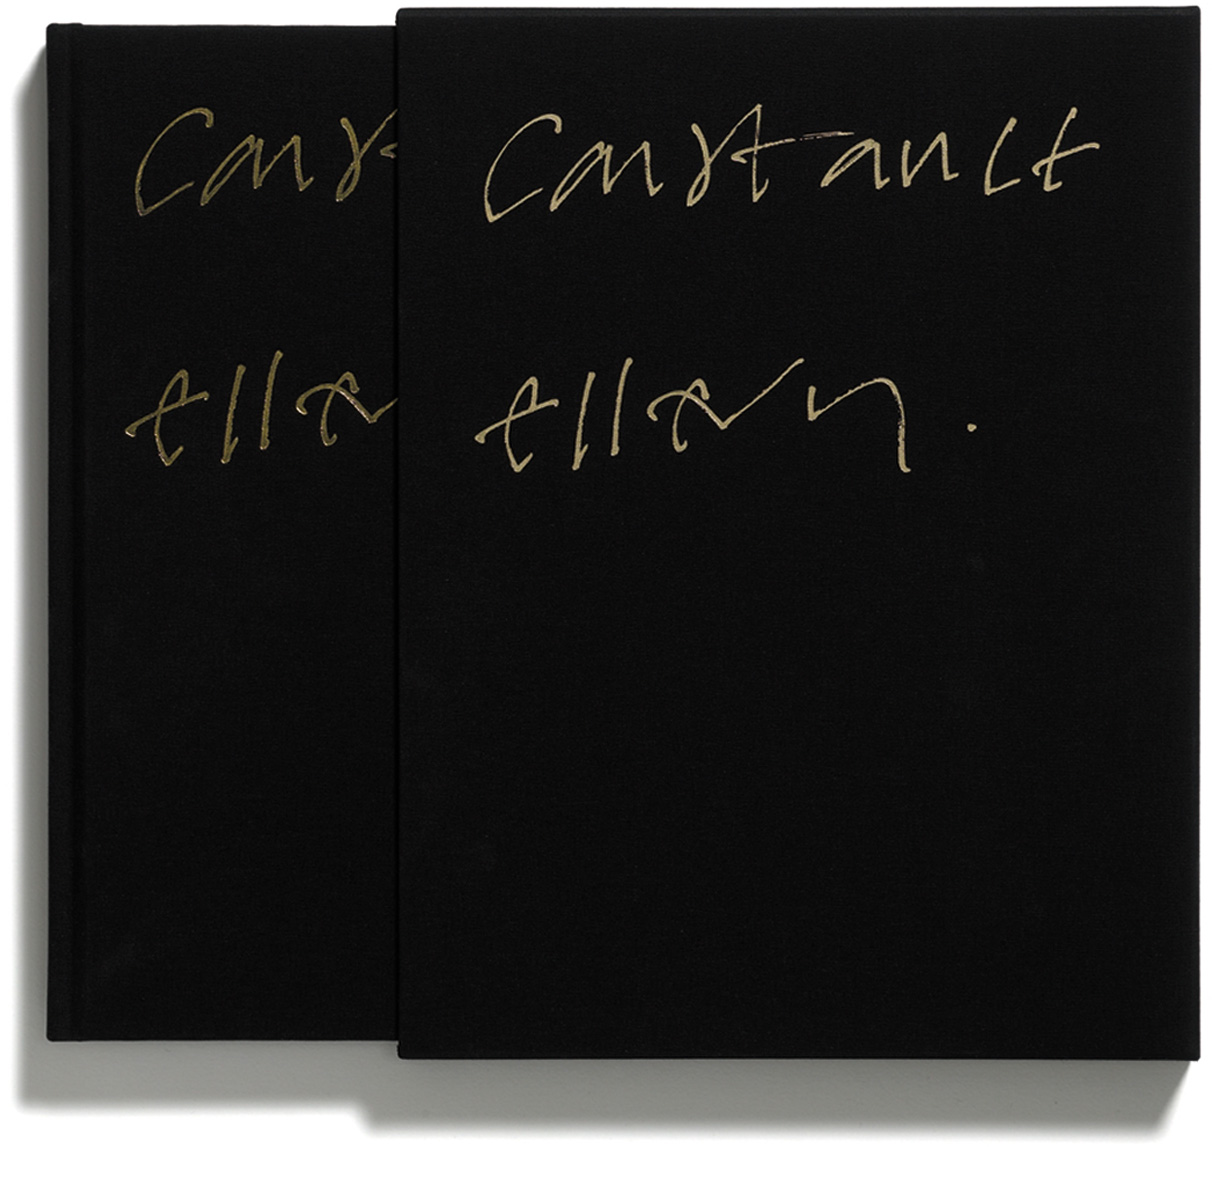 Browns Editions, Browns Editions Publishing, Browns Editions Books, Browns Editions Jonathan Ellery, Browns Editions Constance, Browns Editions Jonathan Ellery Constance